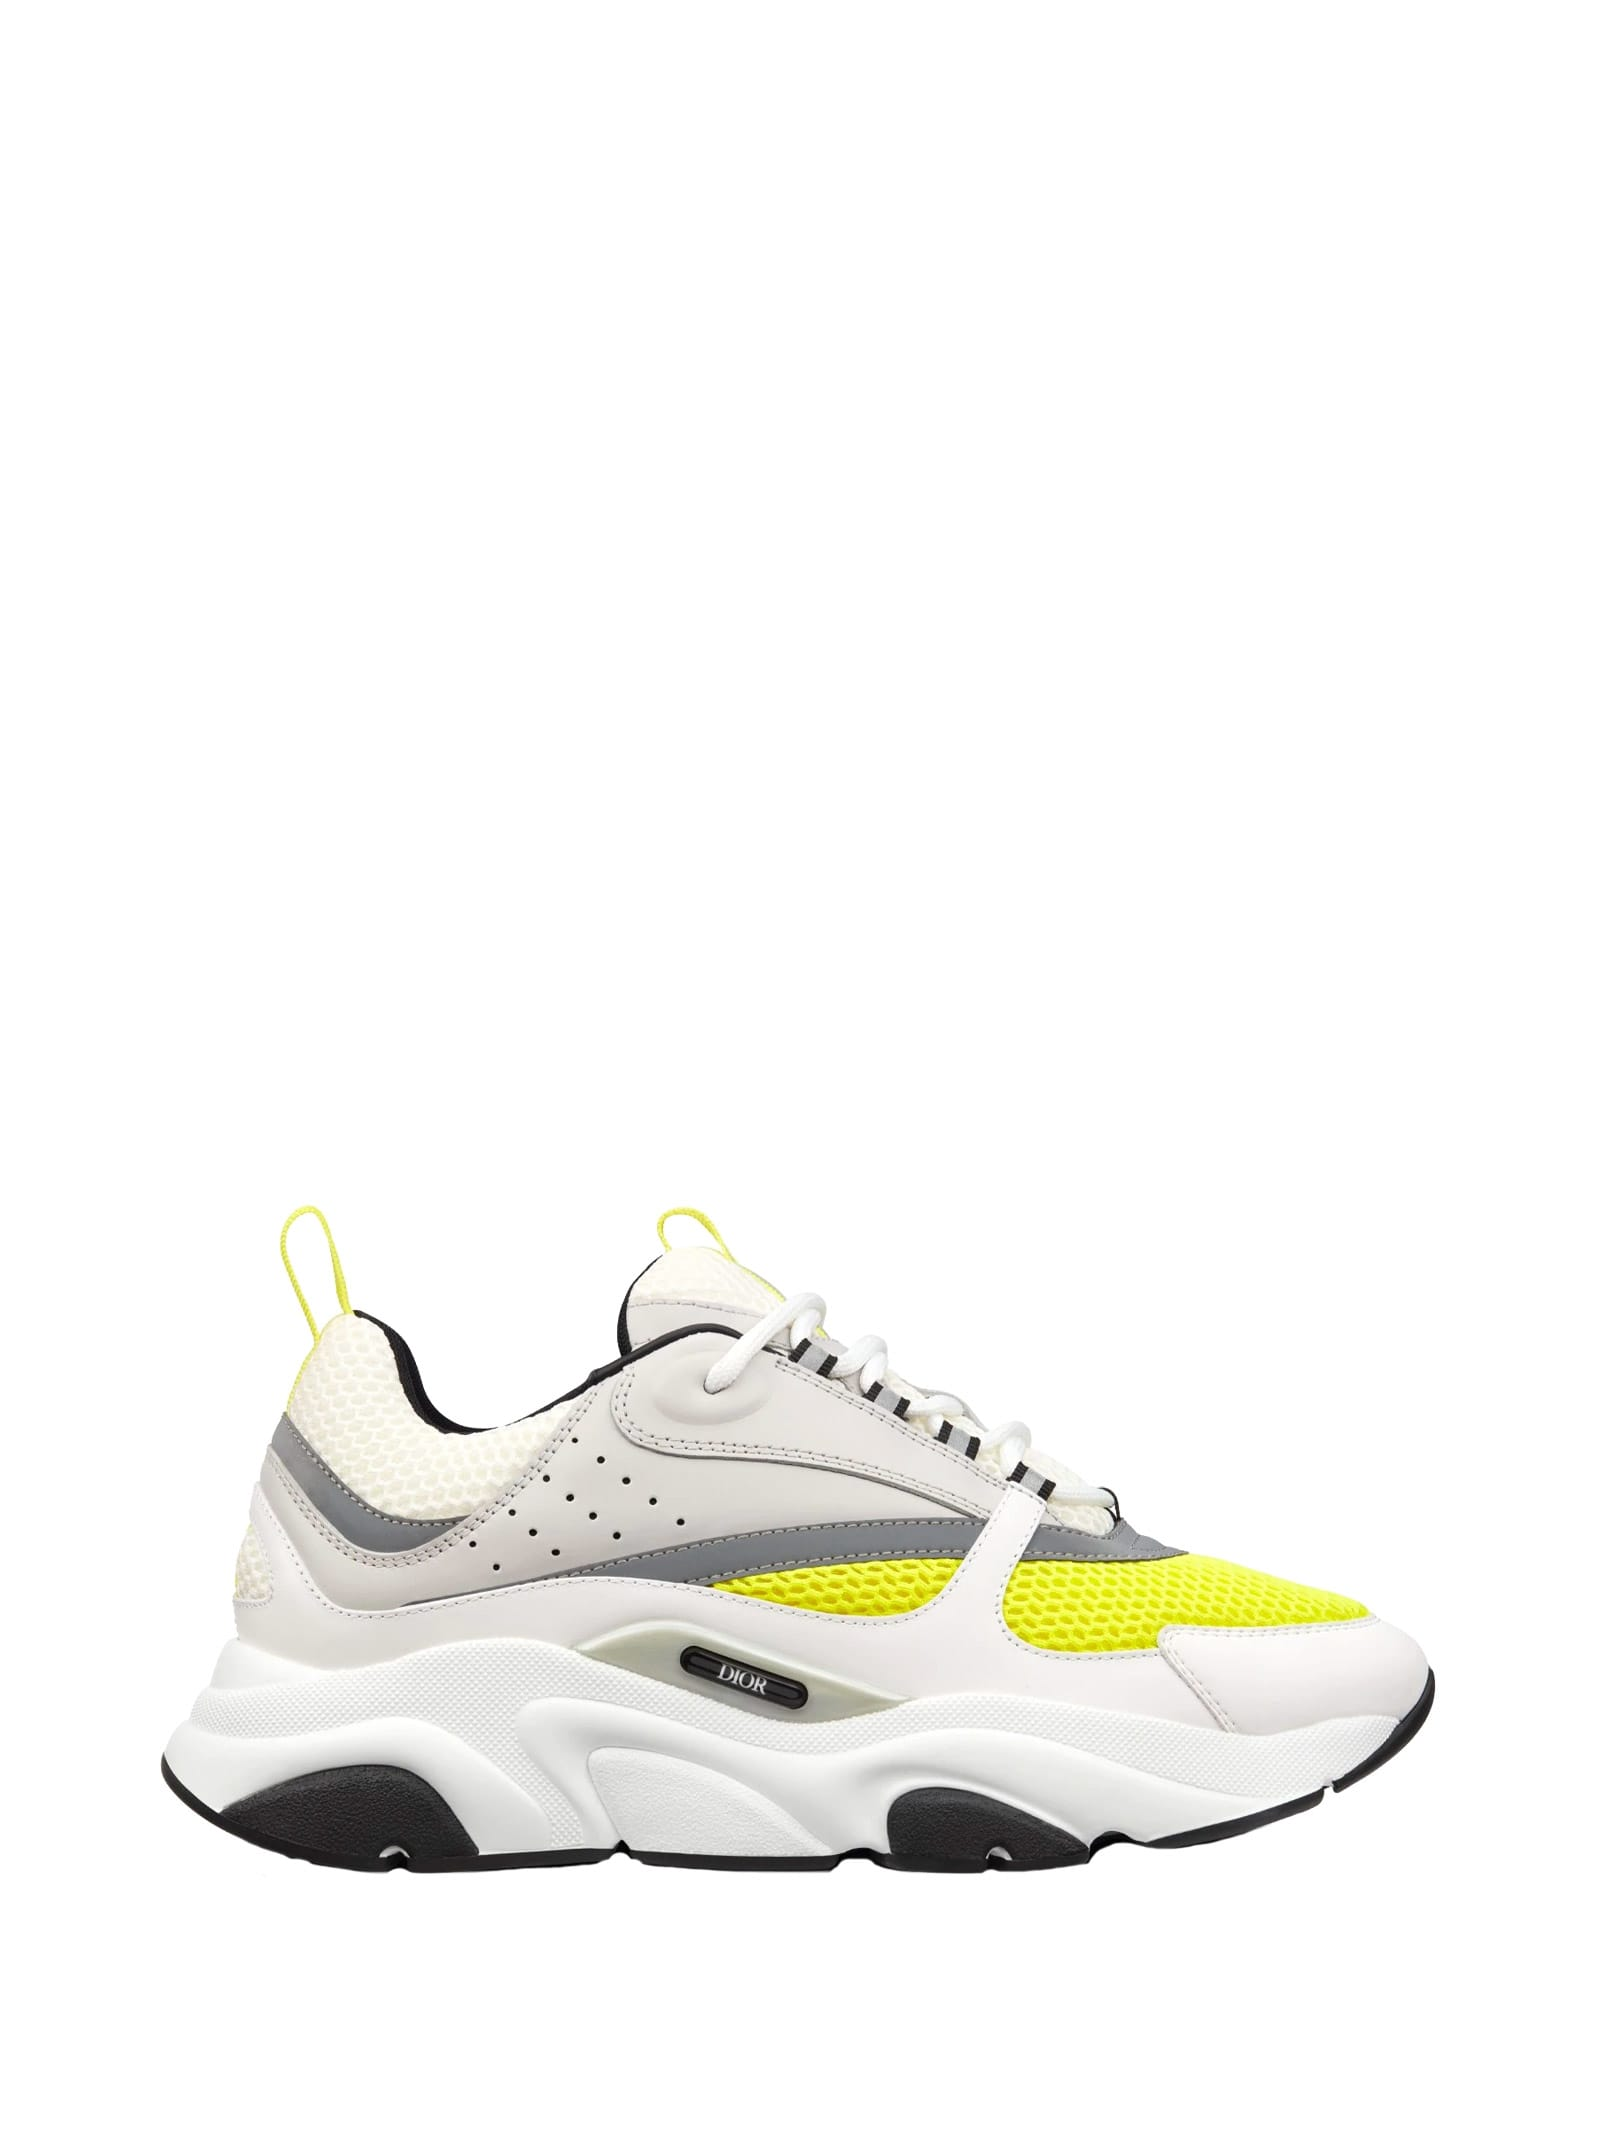 Dior Homme Dior B22 Sneakers